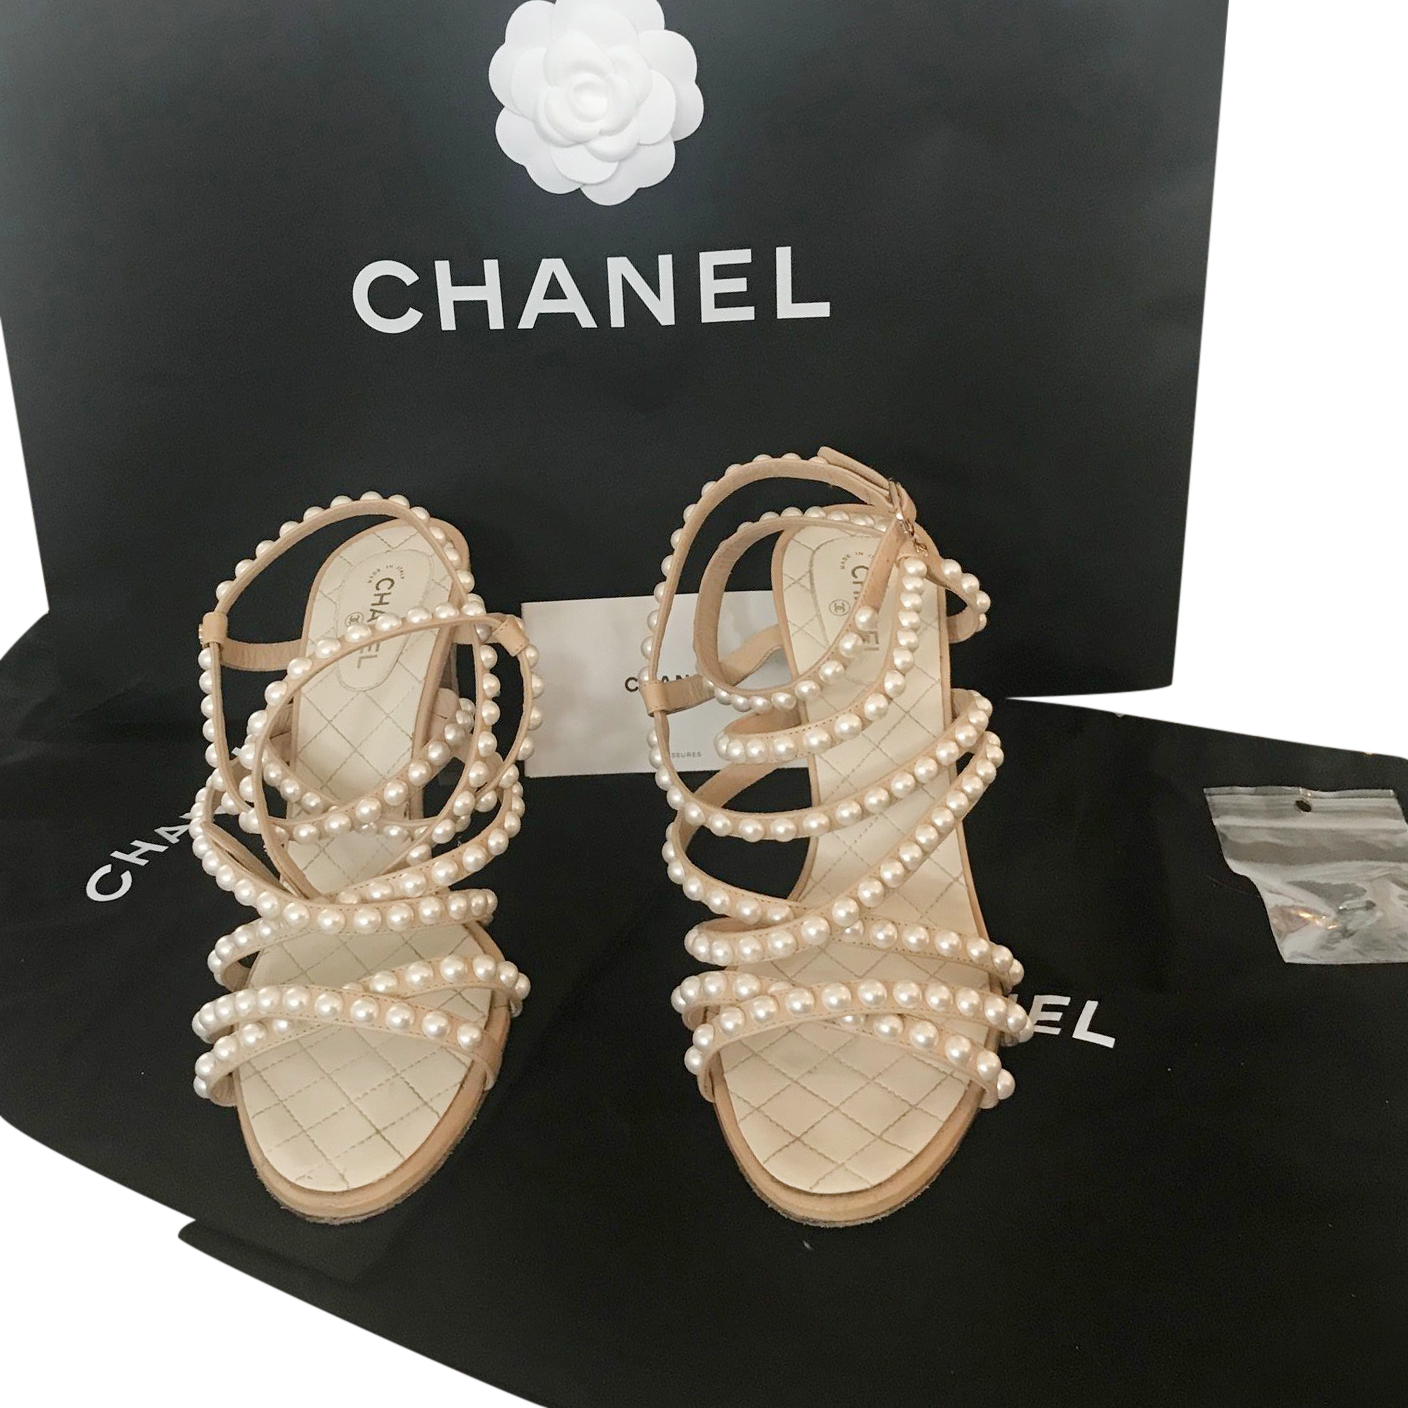 593abf7b51e Chanel Ss18 Crackled Leather Pearl Sandals